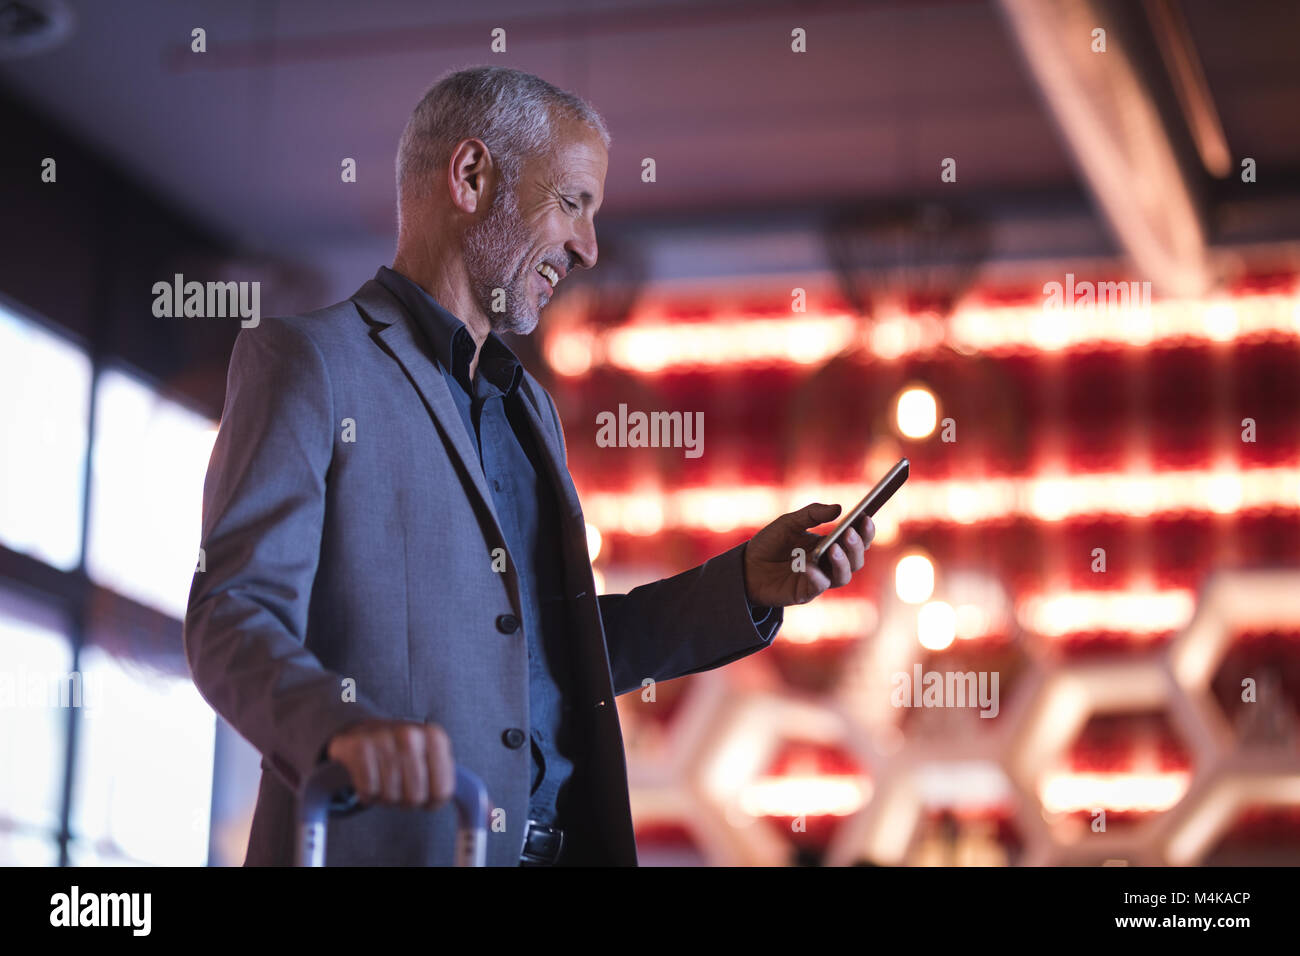 Businessman using smart phone while entering the hotel - Stock Image